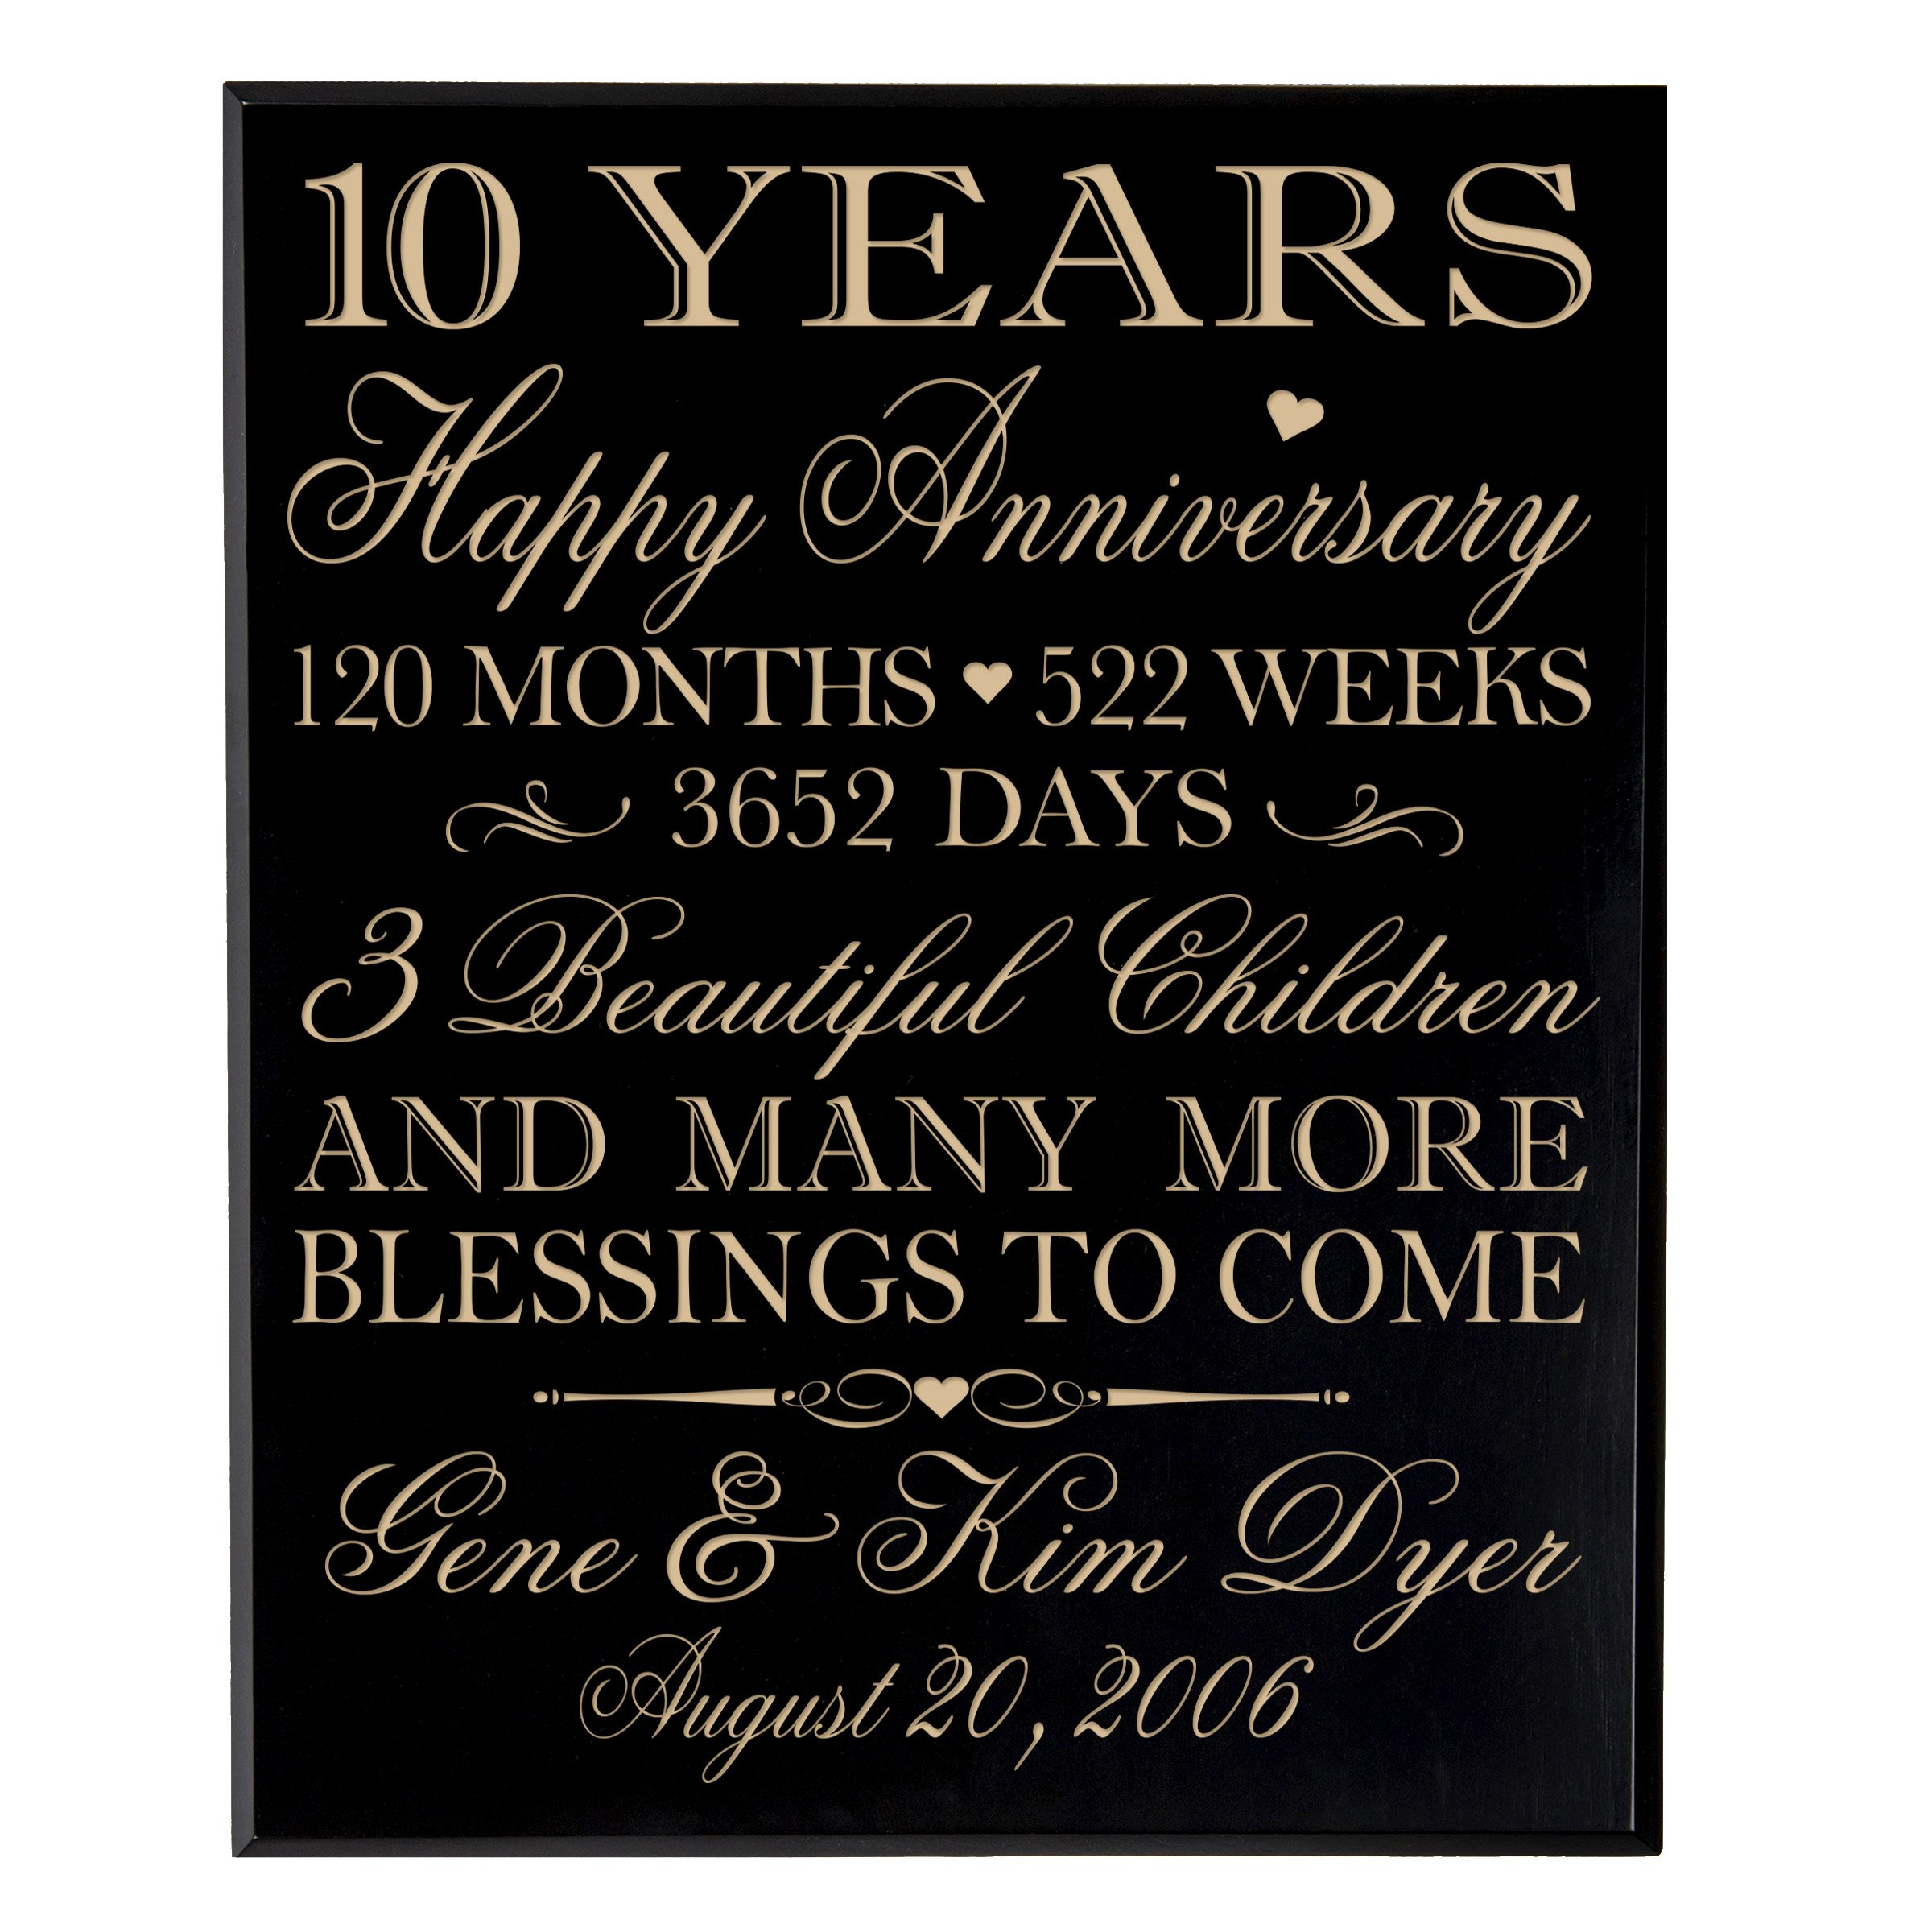 buy personalized 10 year anniversary wedding gifts ideas for couple